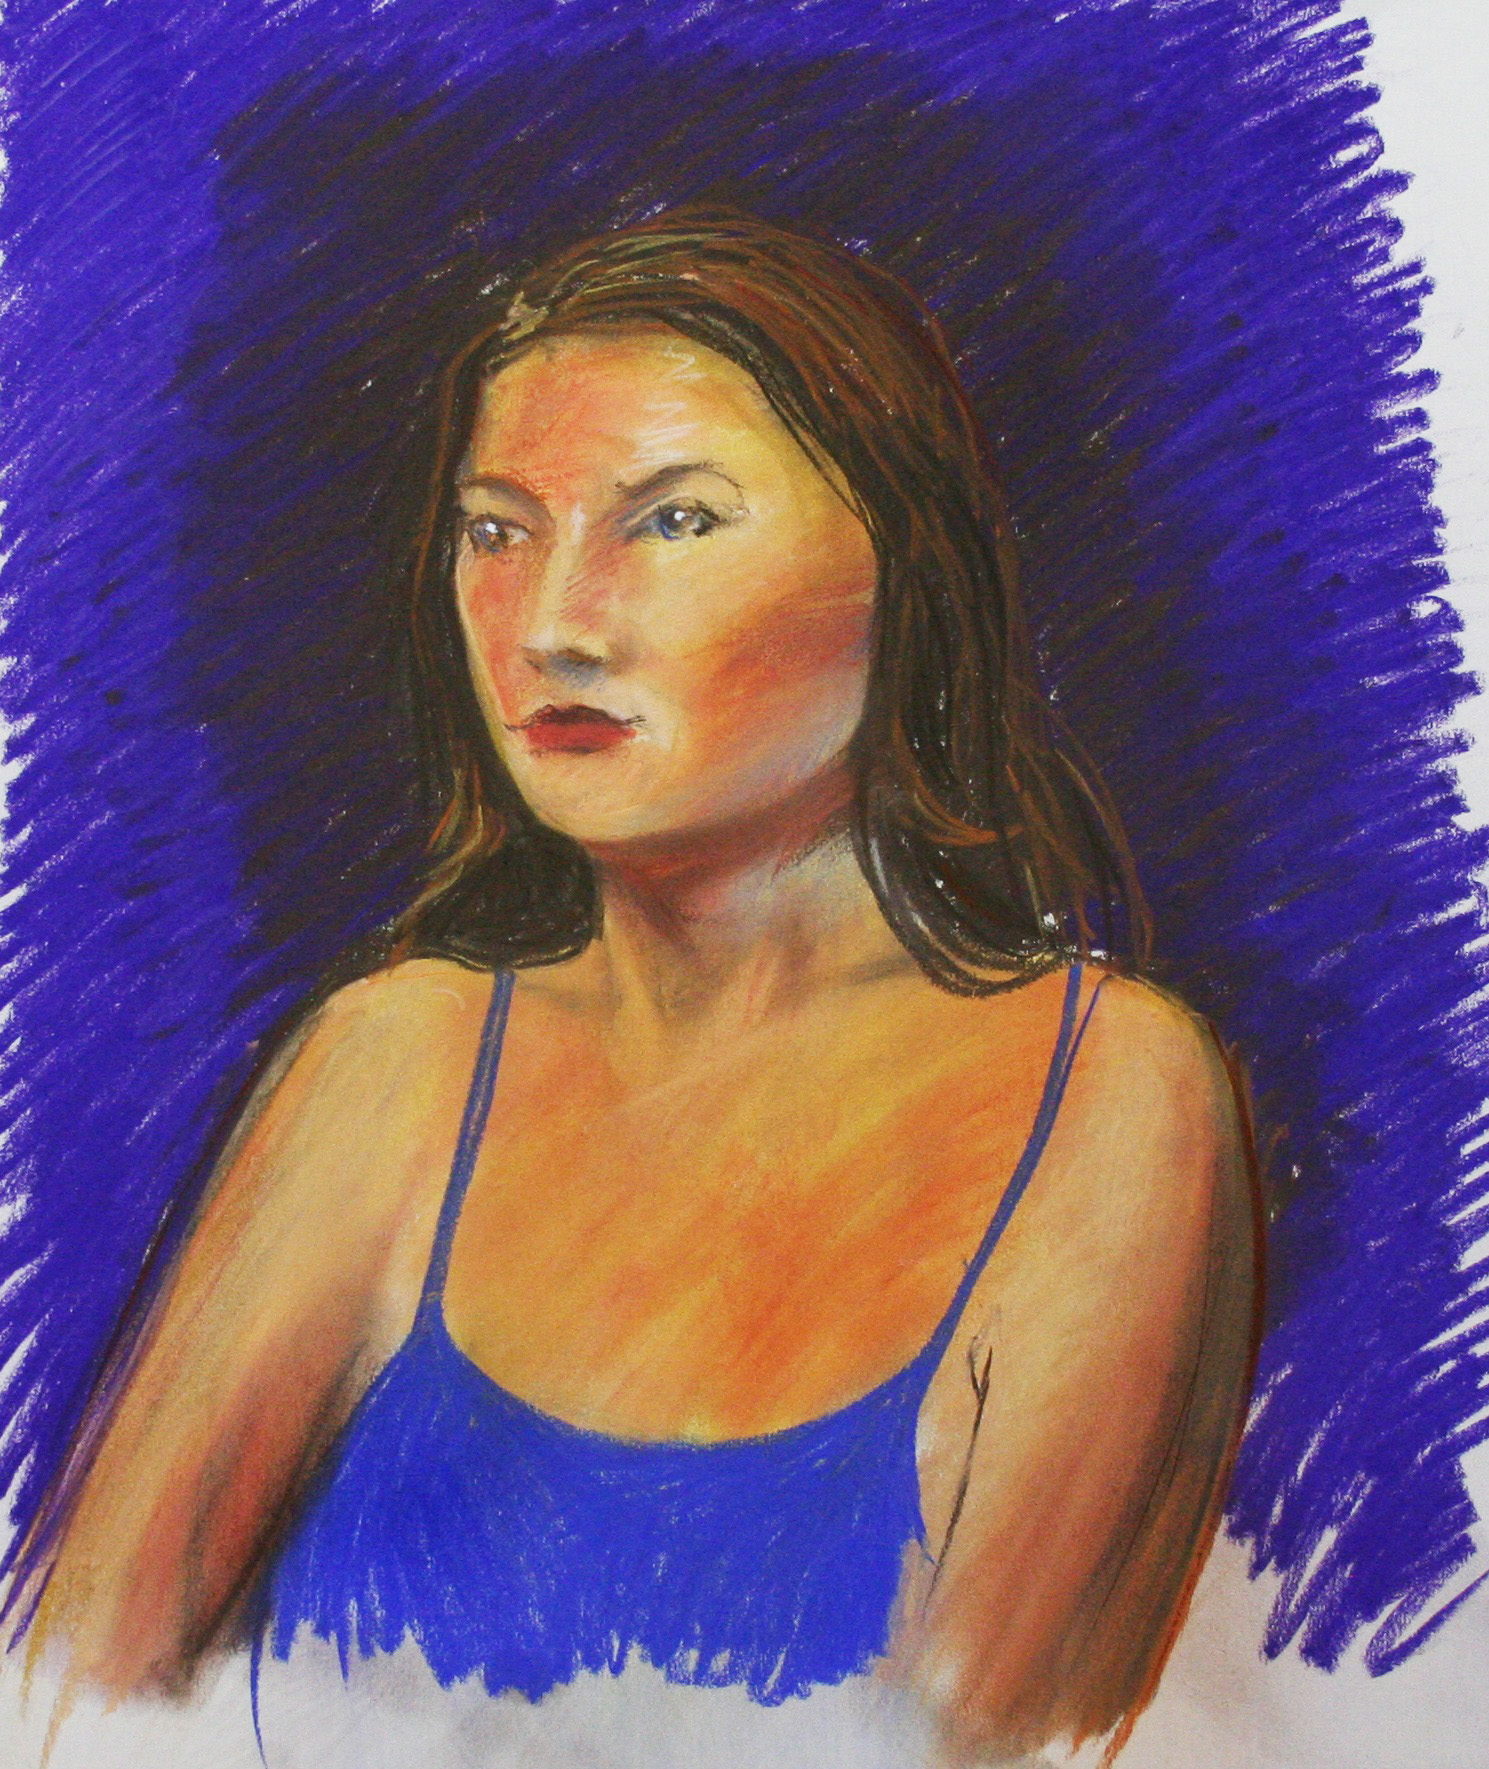 Casandra Dracup did this hour and a half pastel drawing.